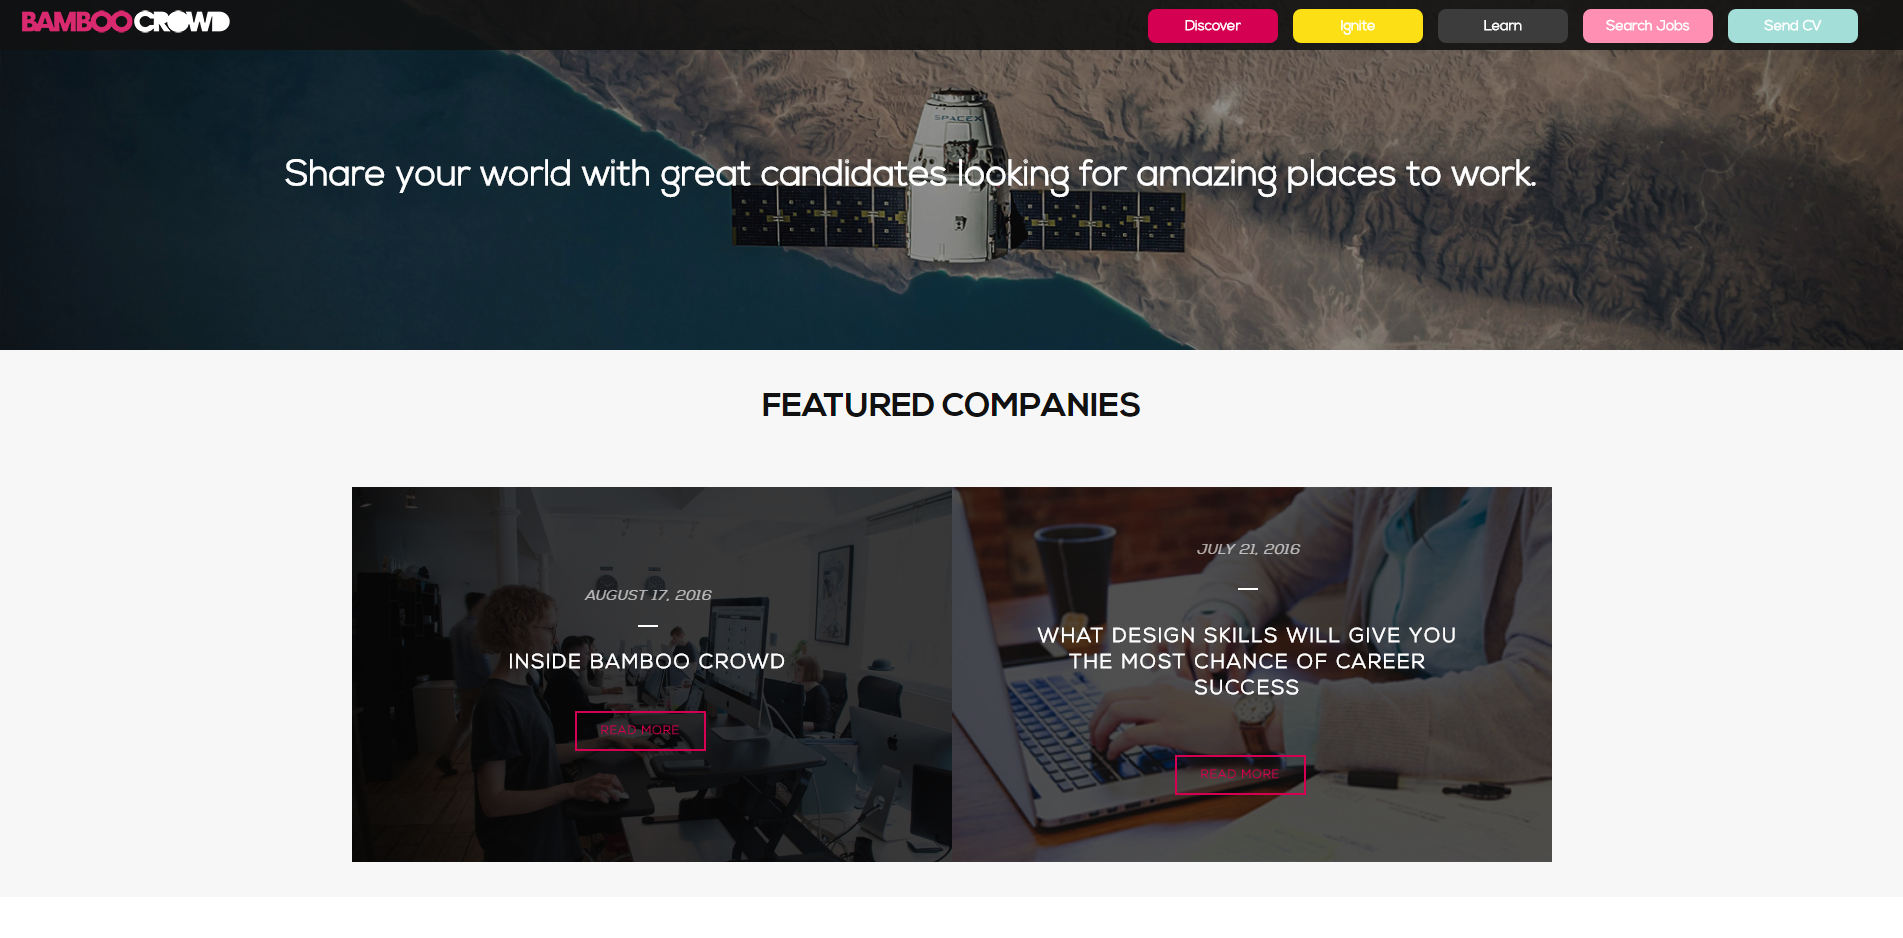 bamboo crowd s innovative recruitment website is now live innovative recruitment website